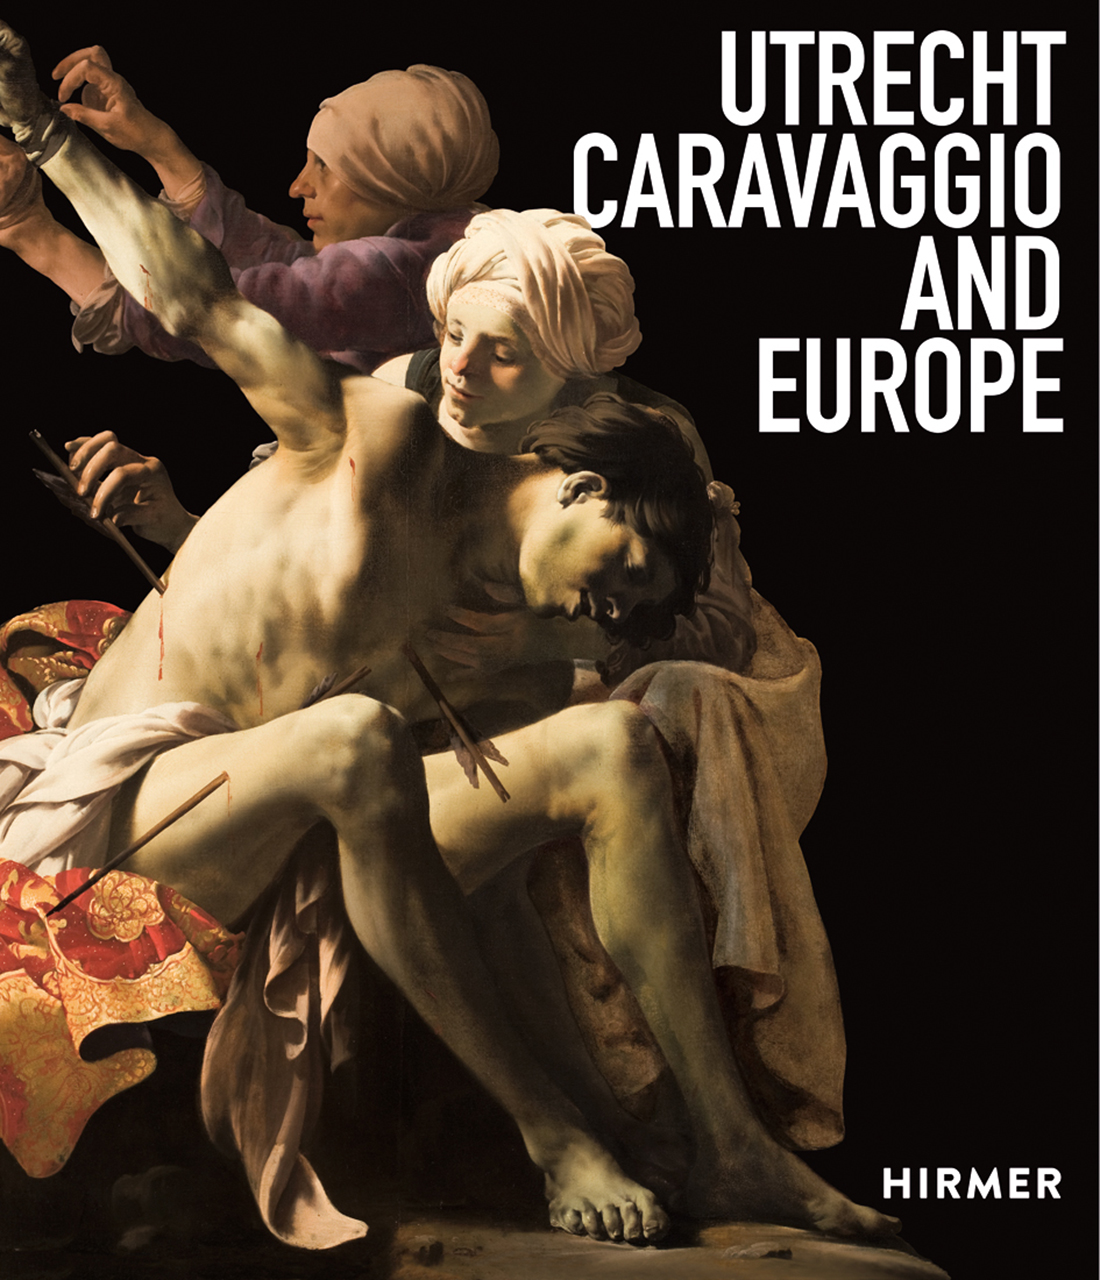 Utrecht, Caravaggio, and Europe